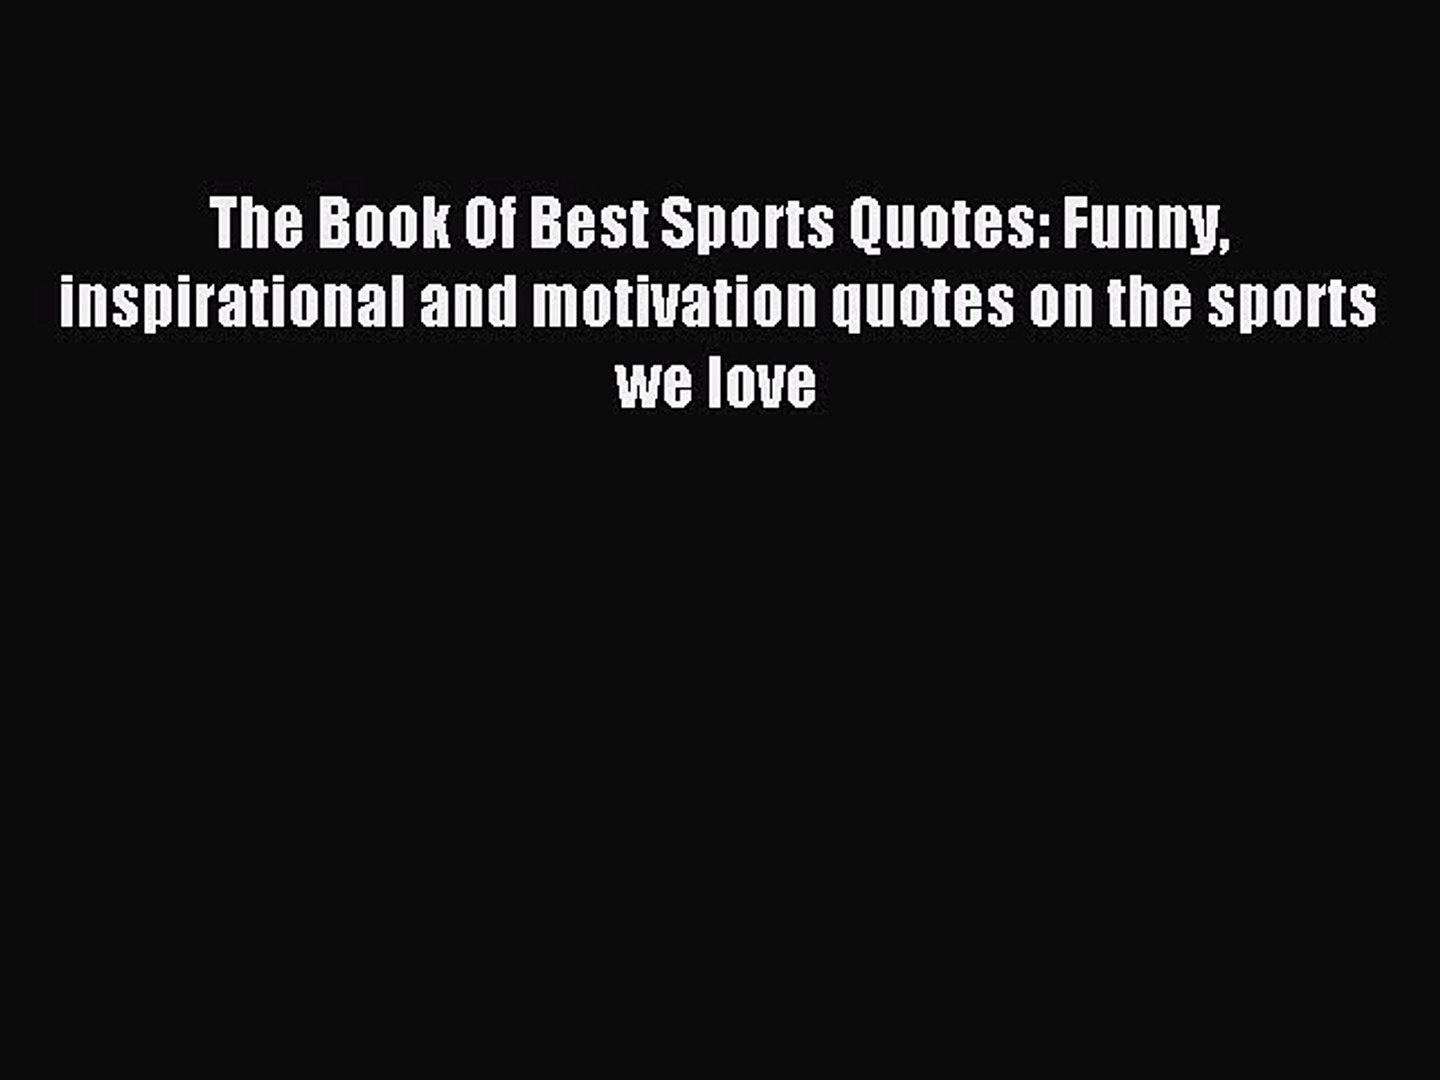 Download The Book Of Best Sports Quotes: Funny inspirational and motivation  quotes on the sports